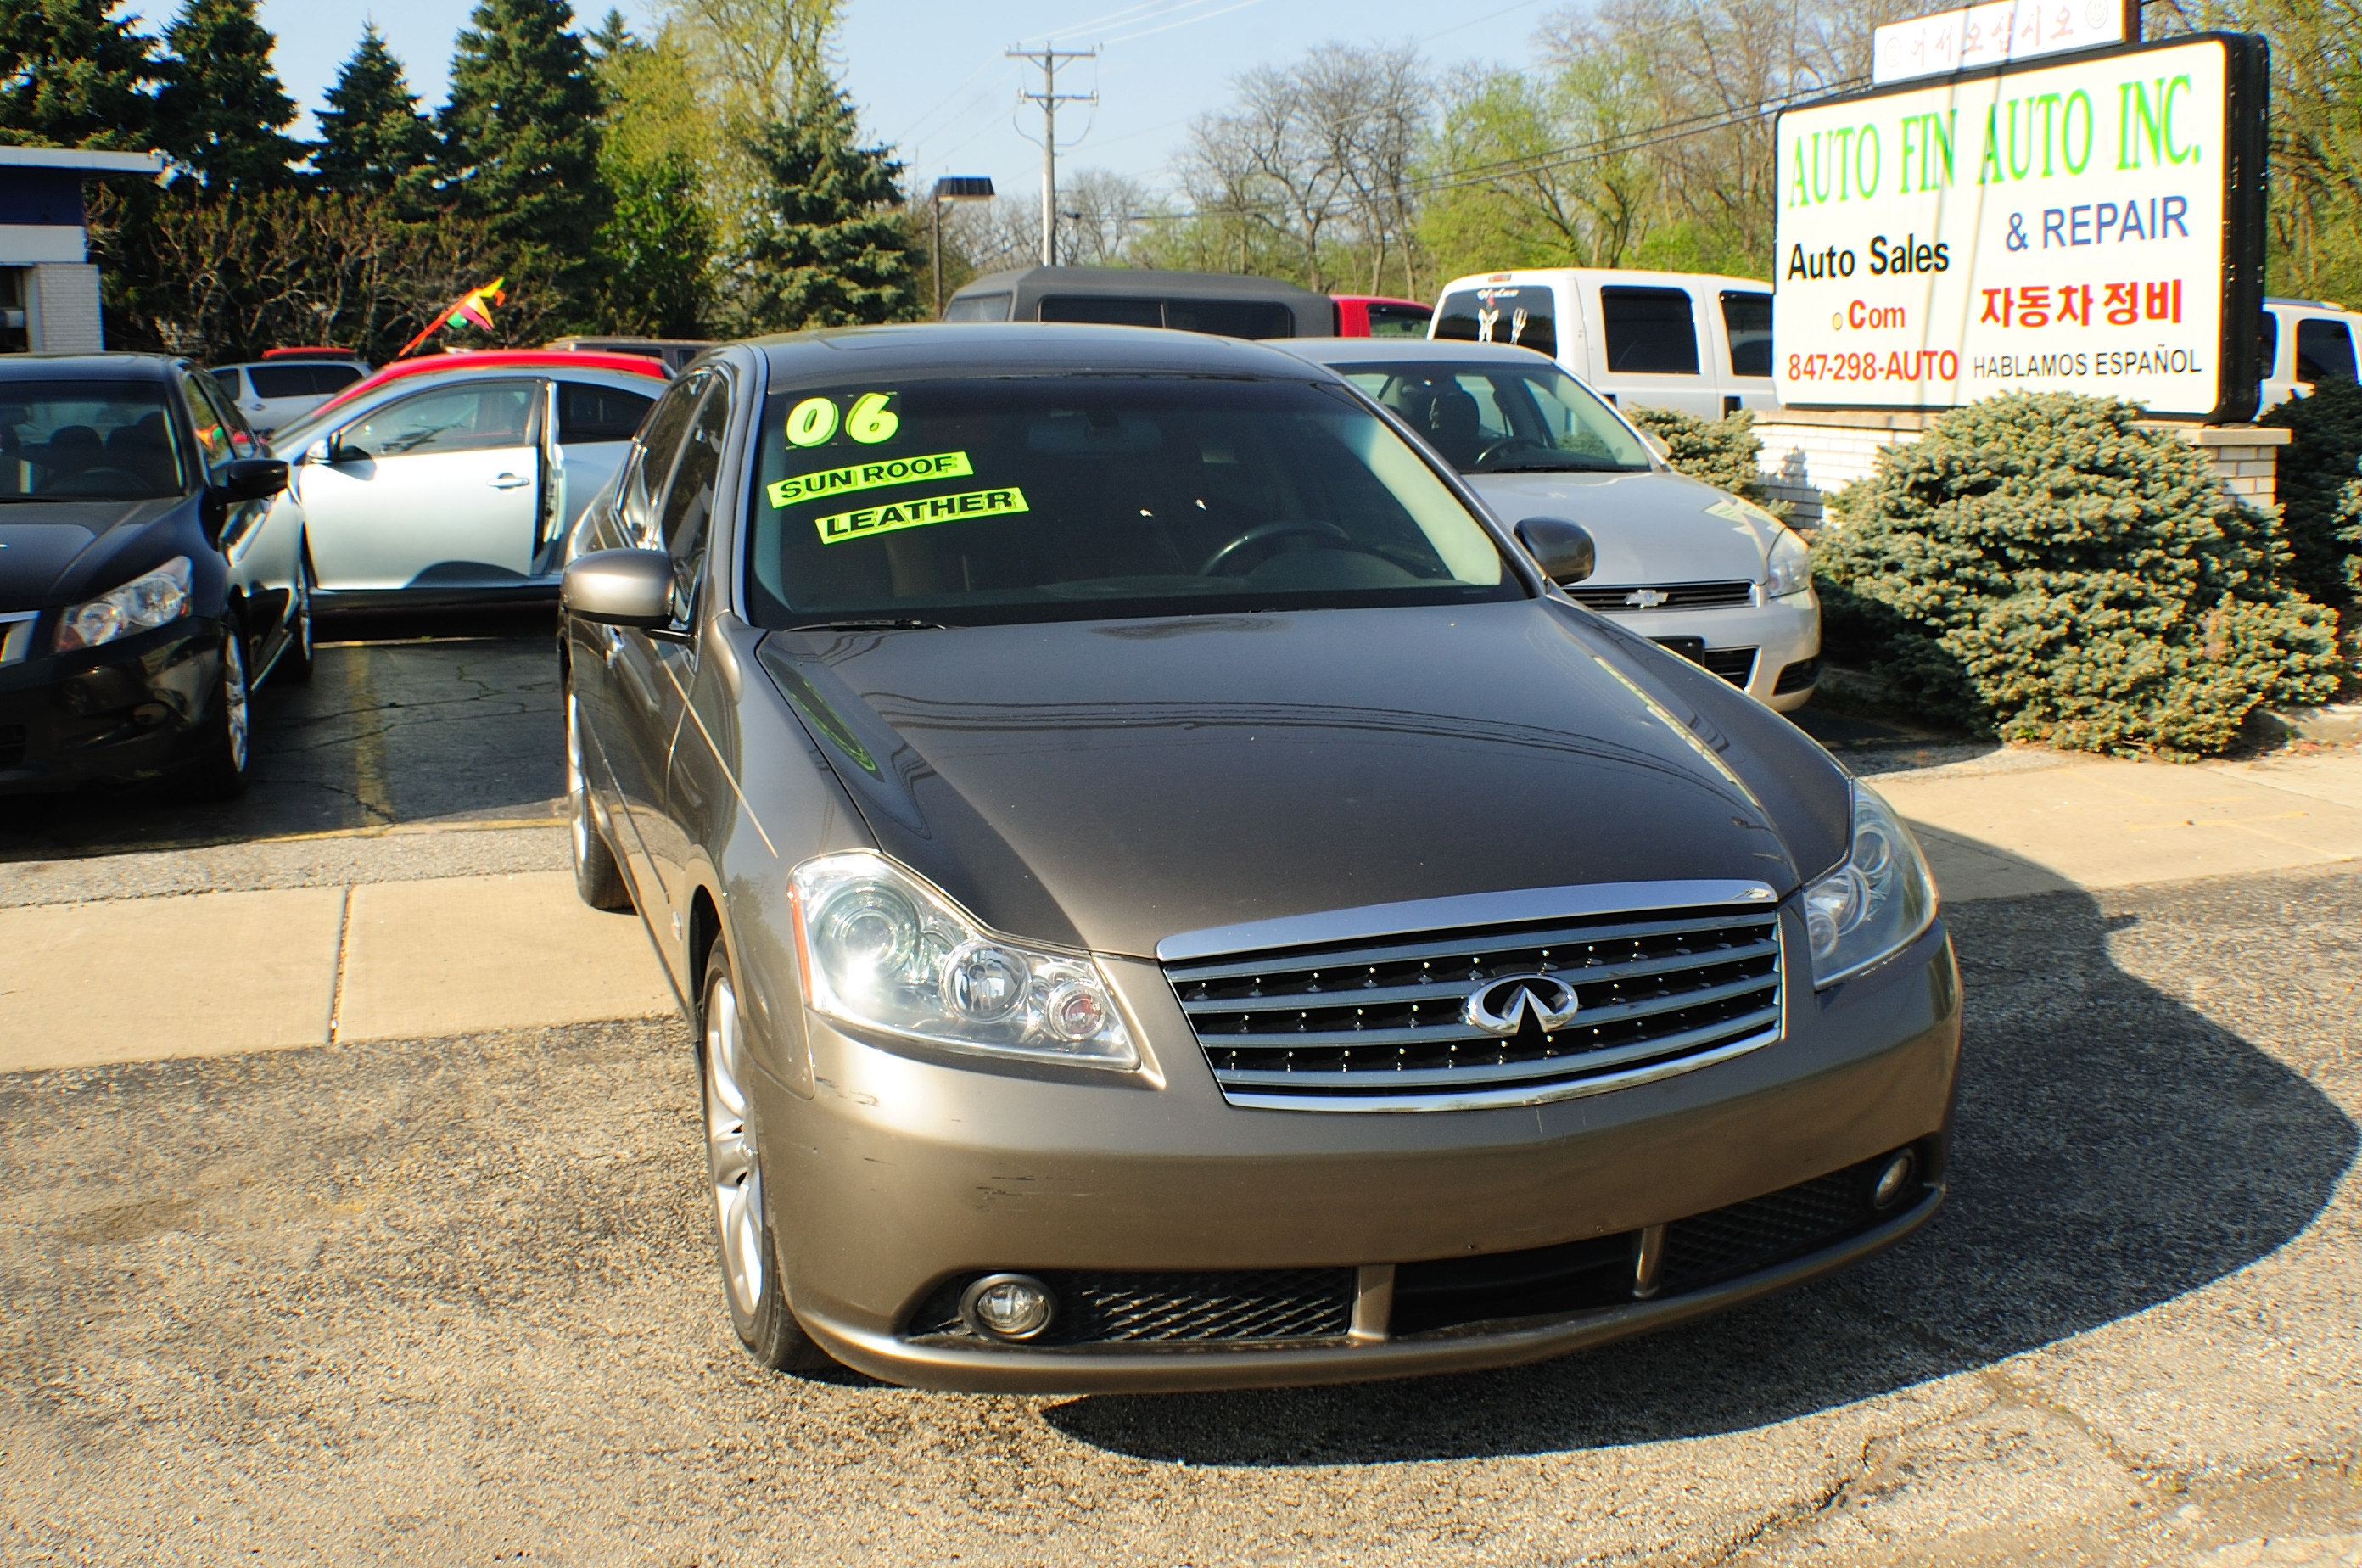 2006 Infiniti M35 Gray Used Sedan car sale Buffalo Grove Bollingbrook Carol Stream